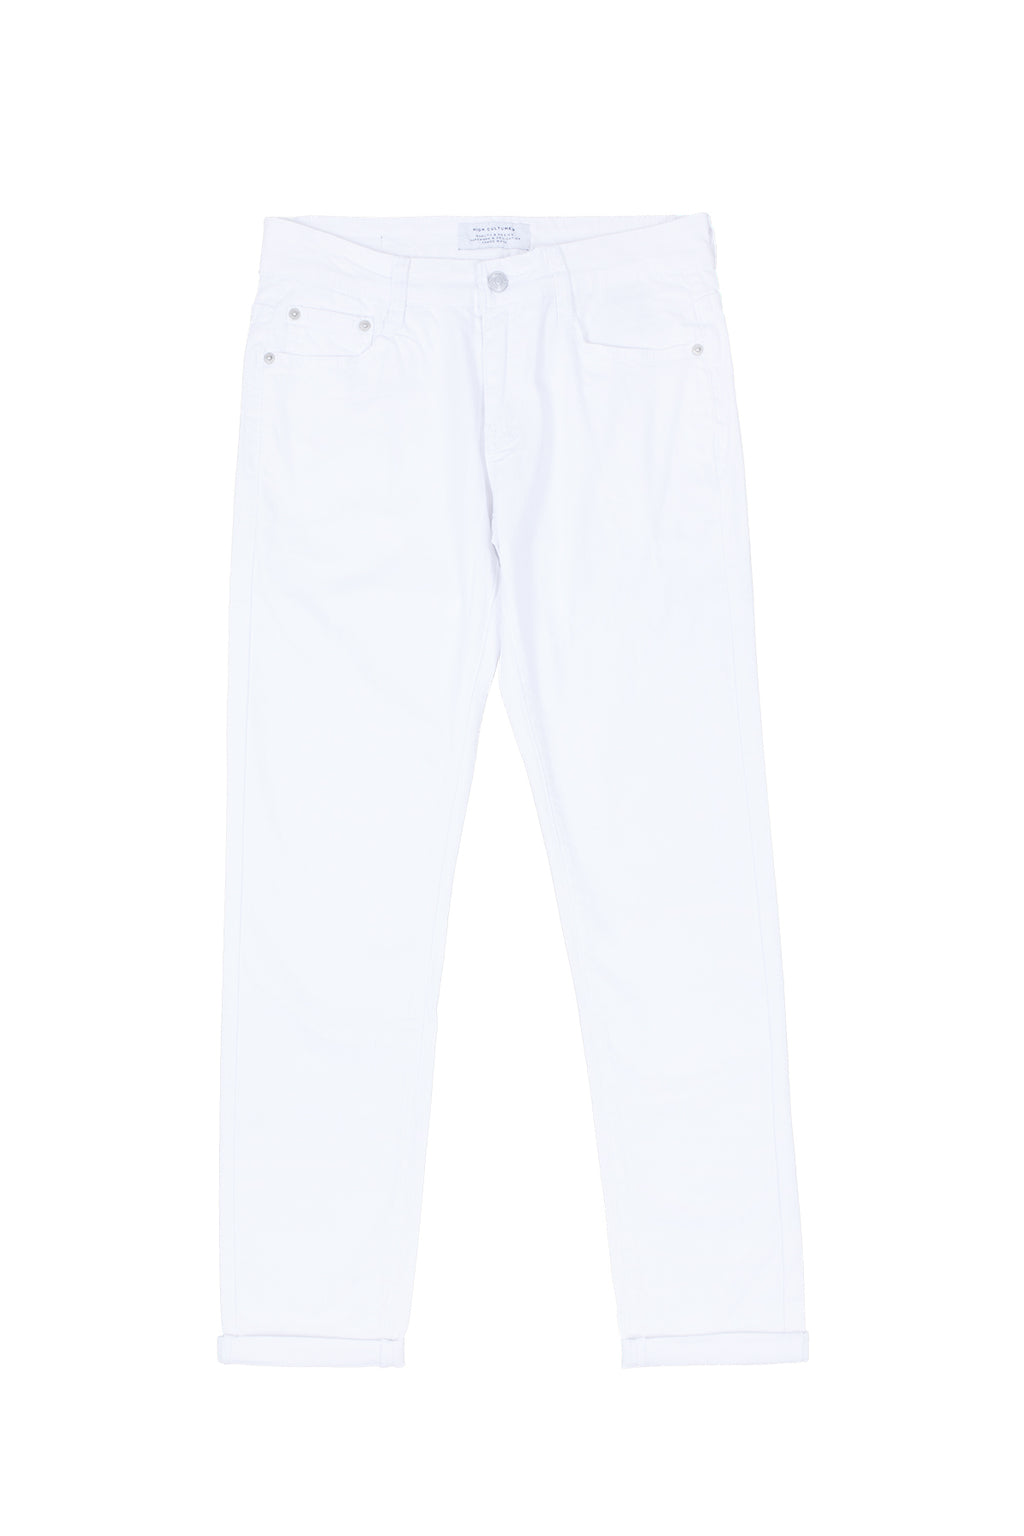 SKINNY-FIT LONG PANT | WHITE - 113